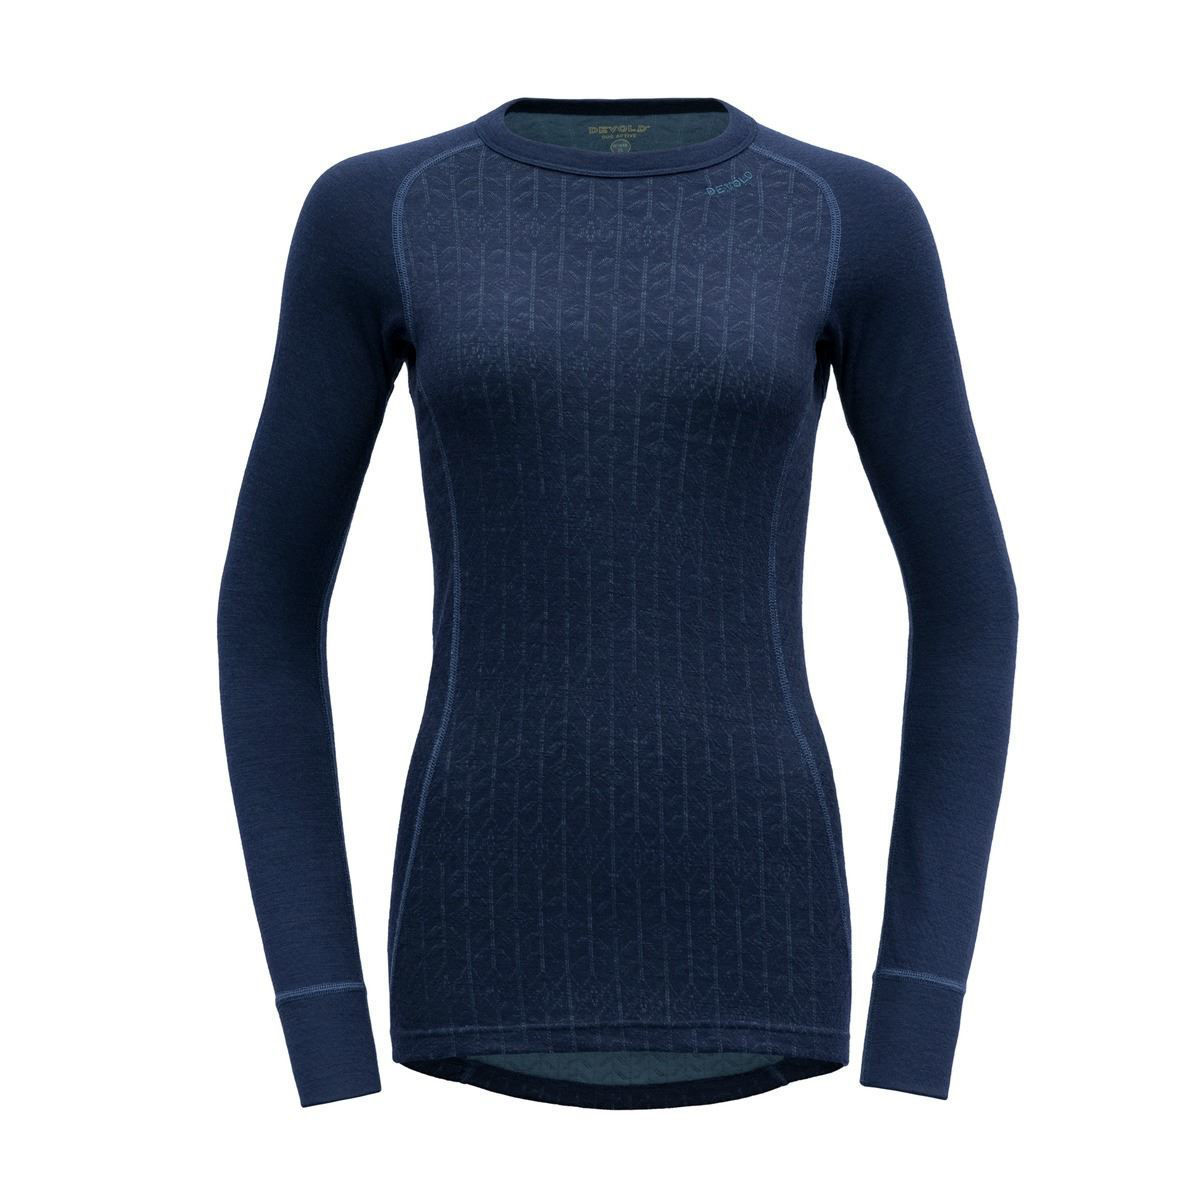 Bilde av DUO ACTIVE WOMAN SHIRT